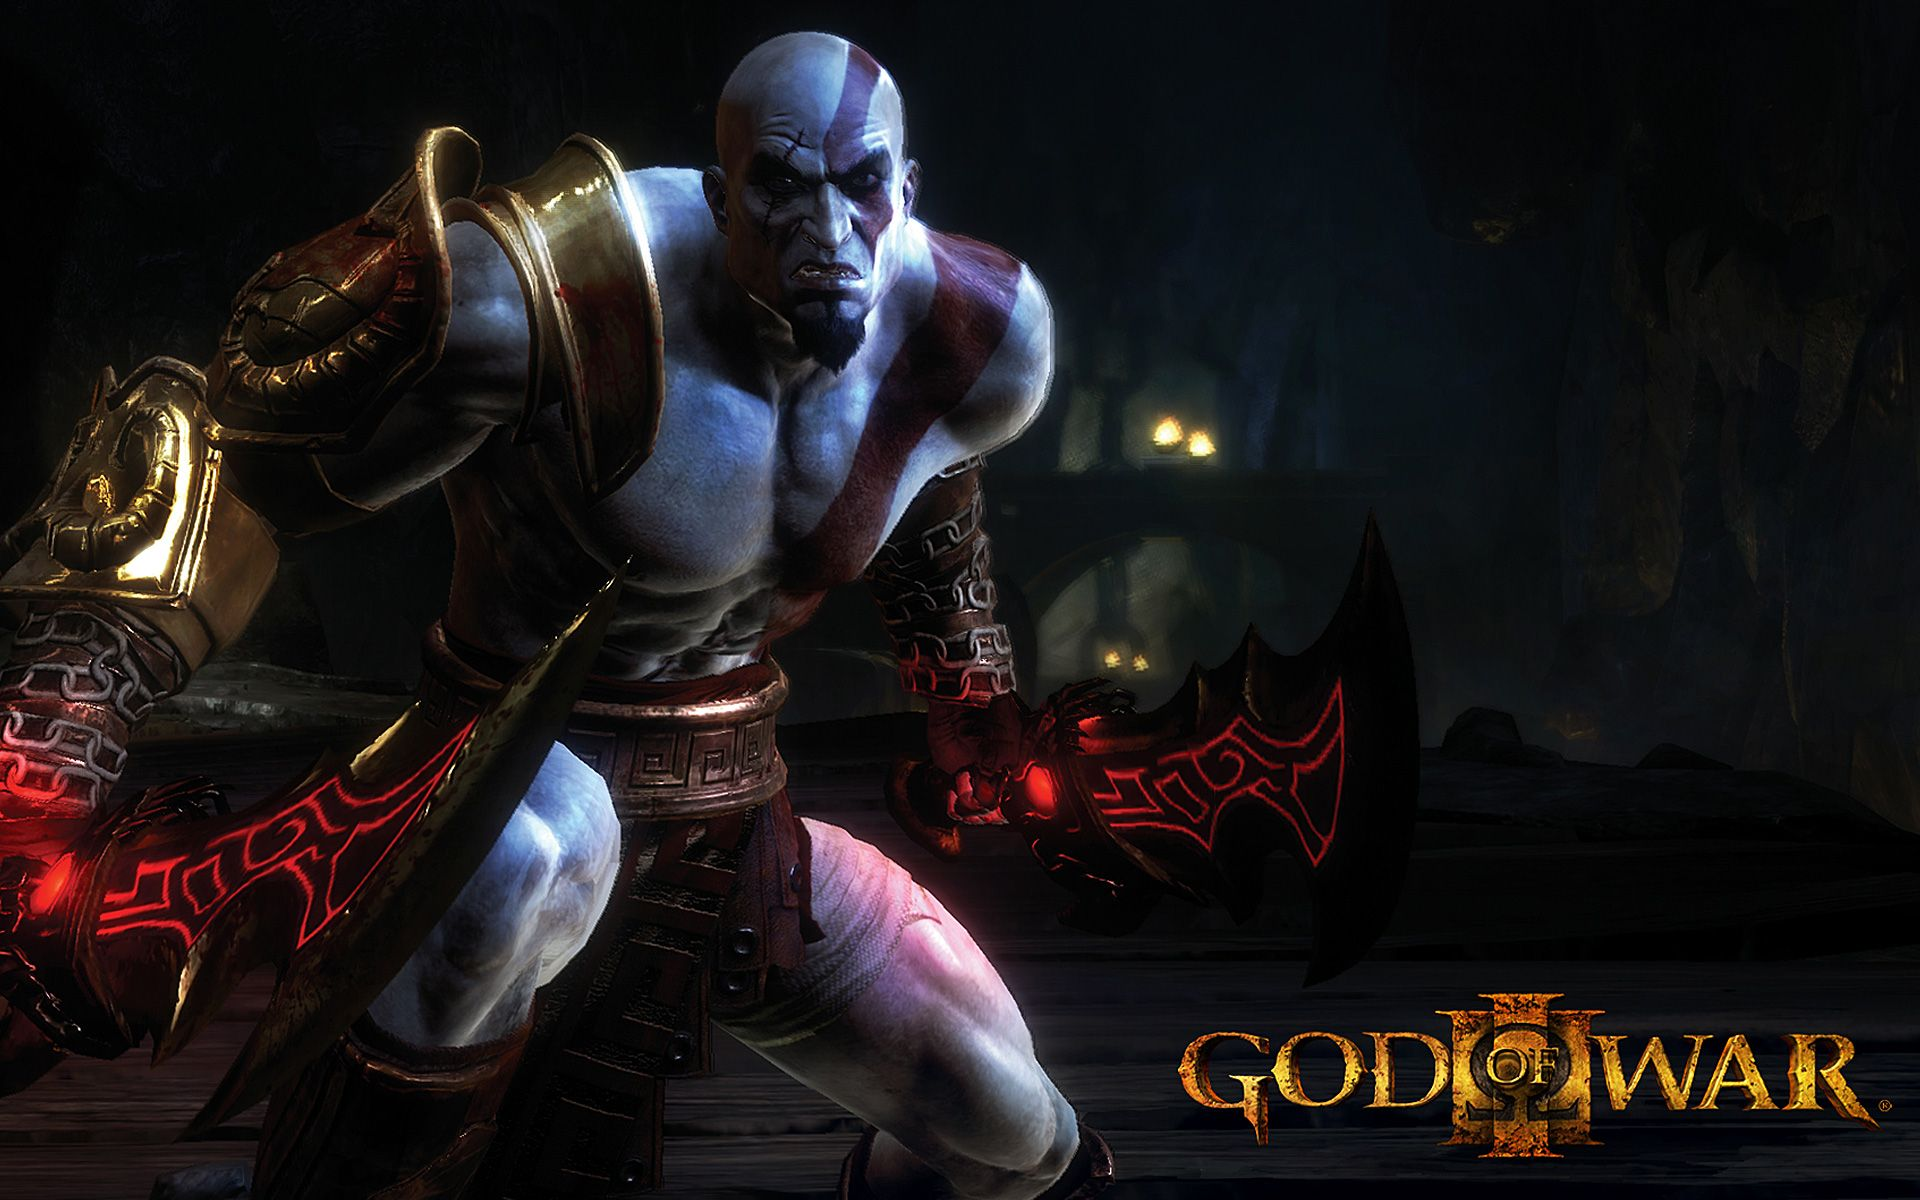 kratos with a sword god of war wallpaper game wallpapers